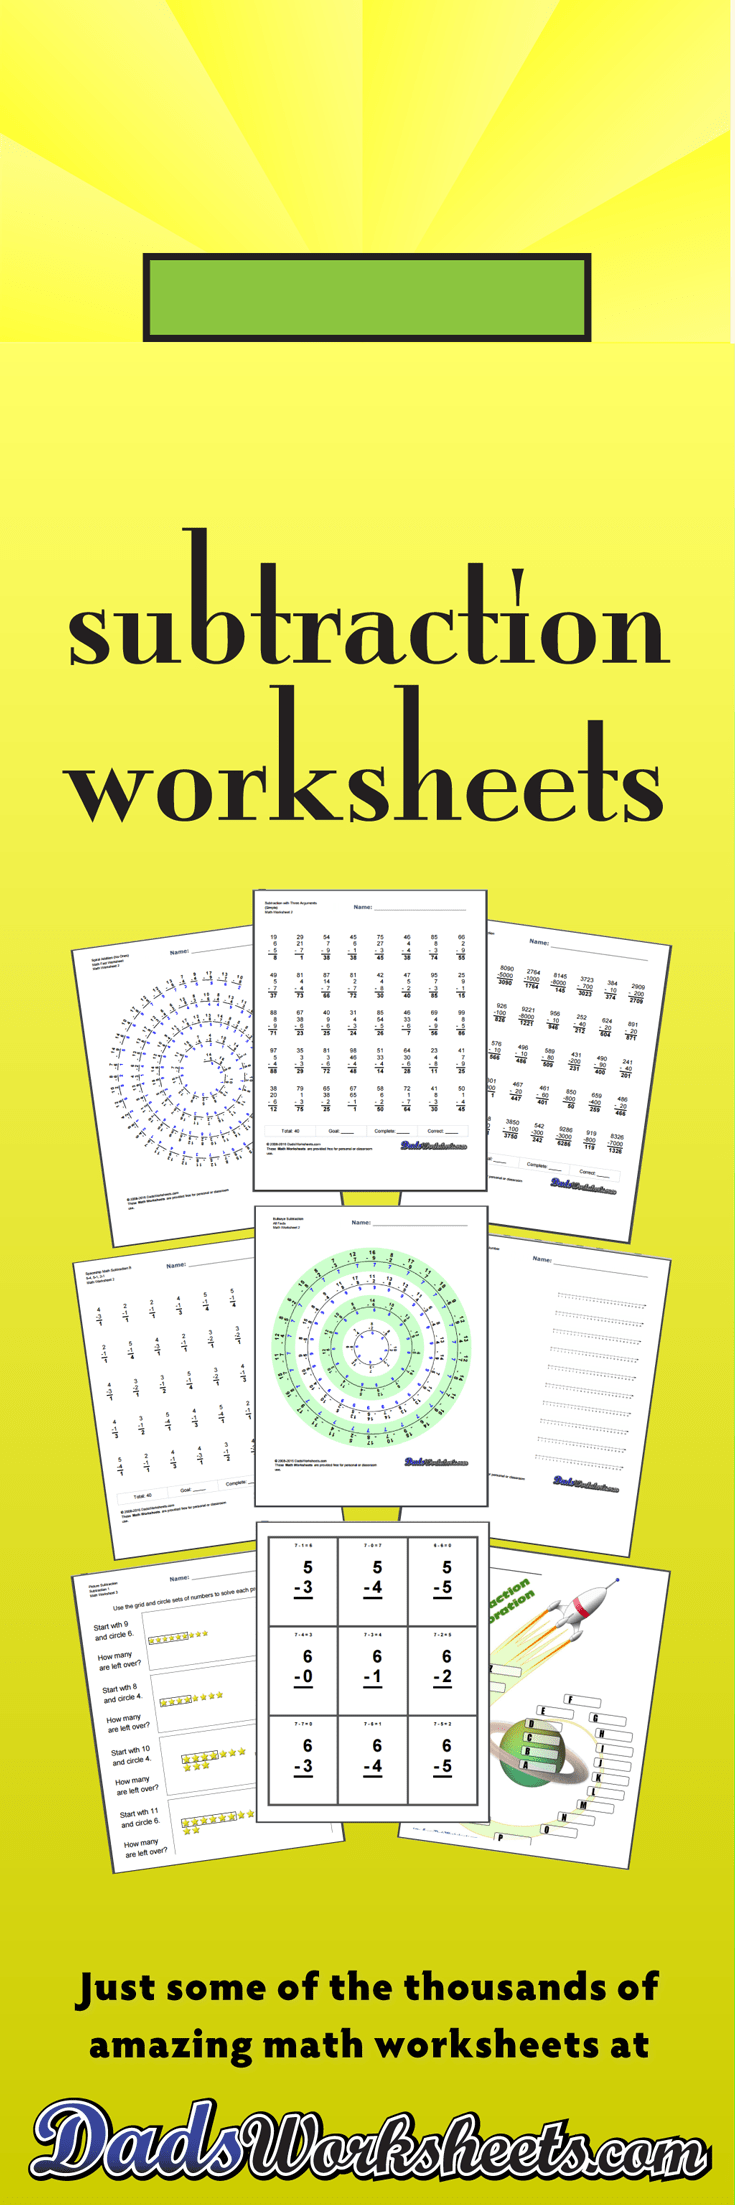 medium resolution of Subtraction Worksheets for Math Practice!